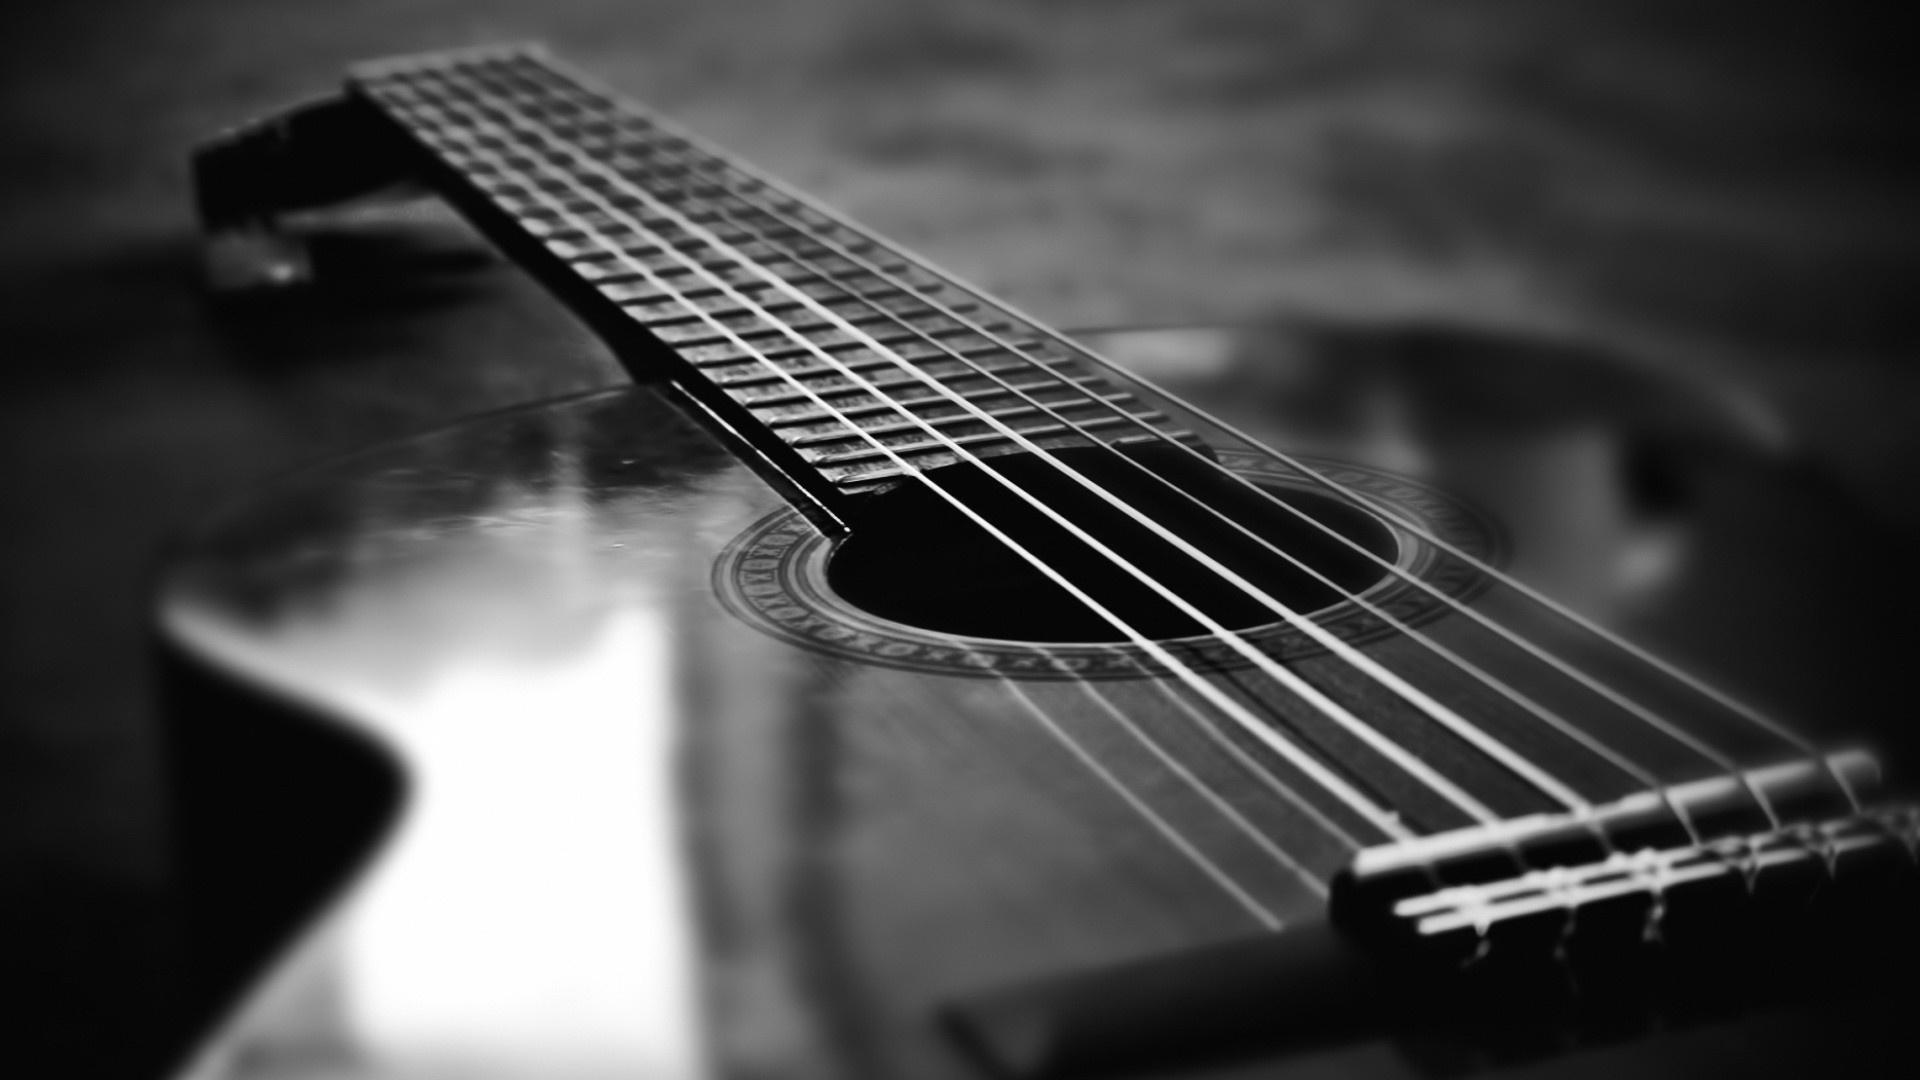 Black And White Guitar Wallpaper Acoustic Guitar 110729 Hd Wallpaper Backgrounds Download